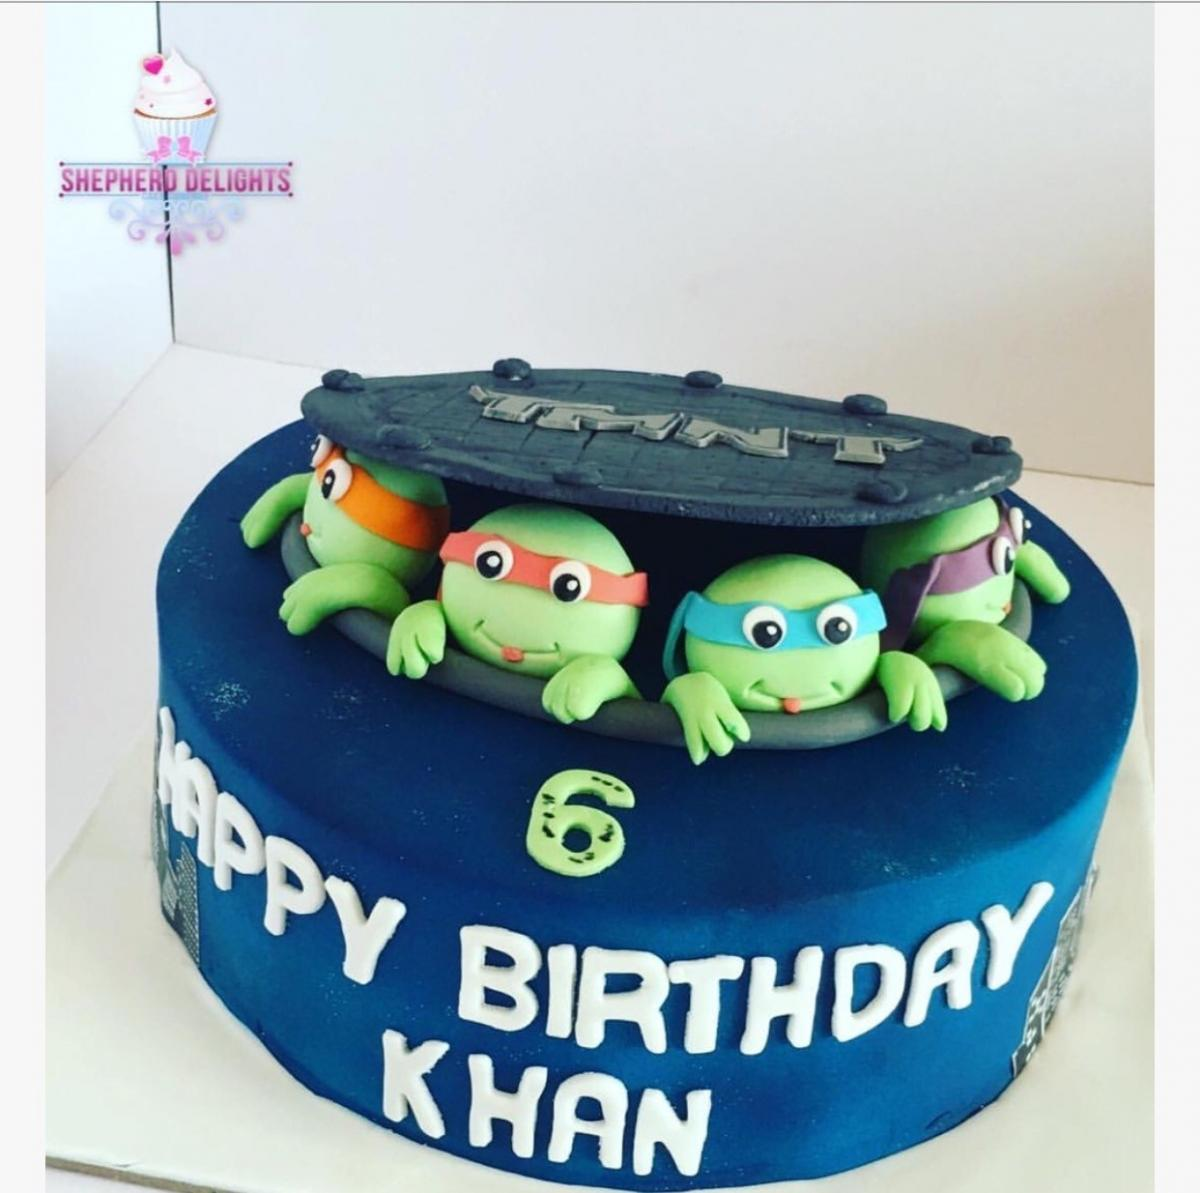 Superb Ninja Turtle Birthday Cake Birthday Cakes Cakes For Children Funny Birthday Cards Online Fluifree Goldxyz